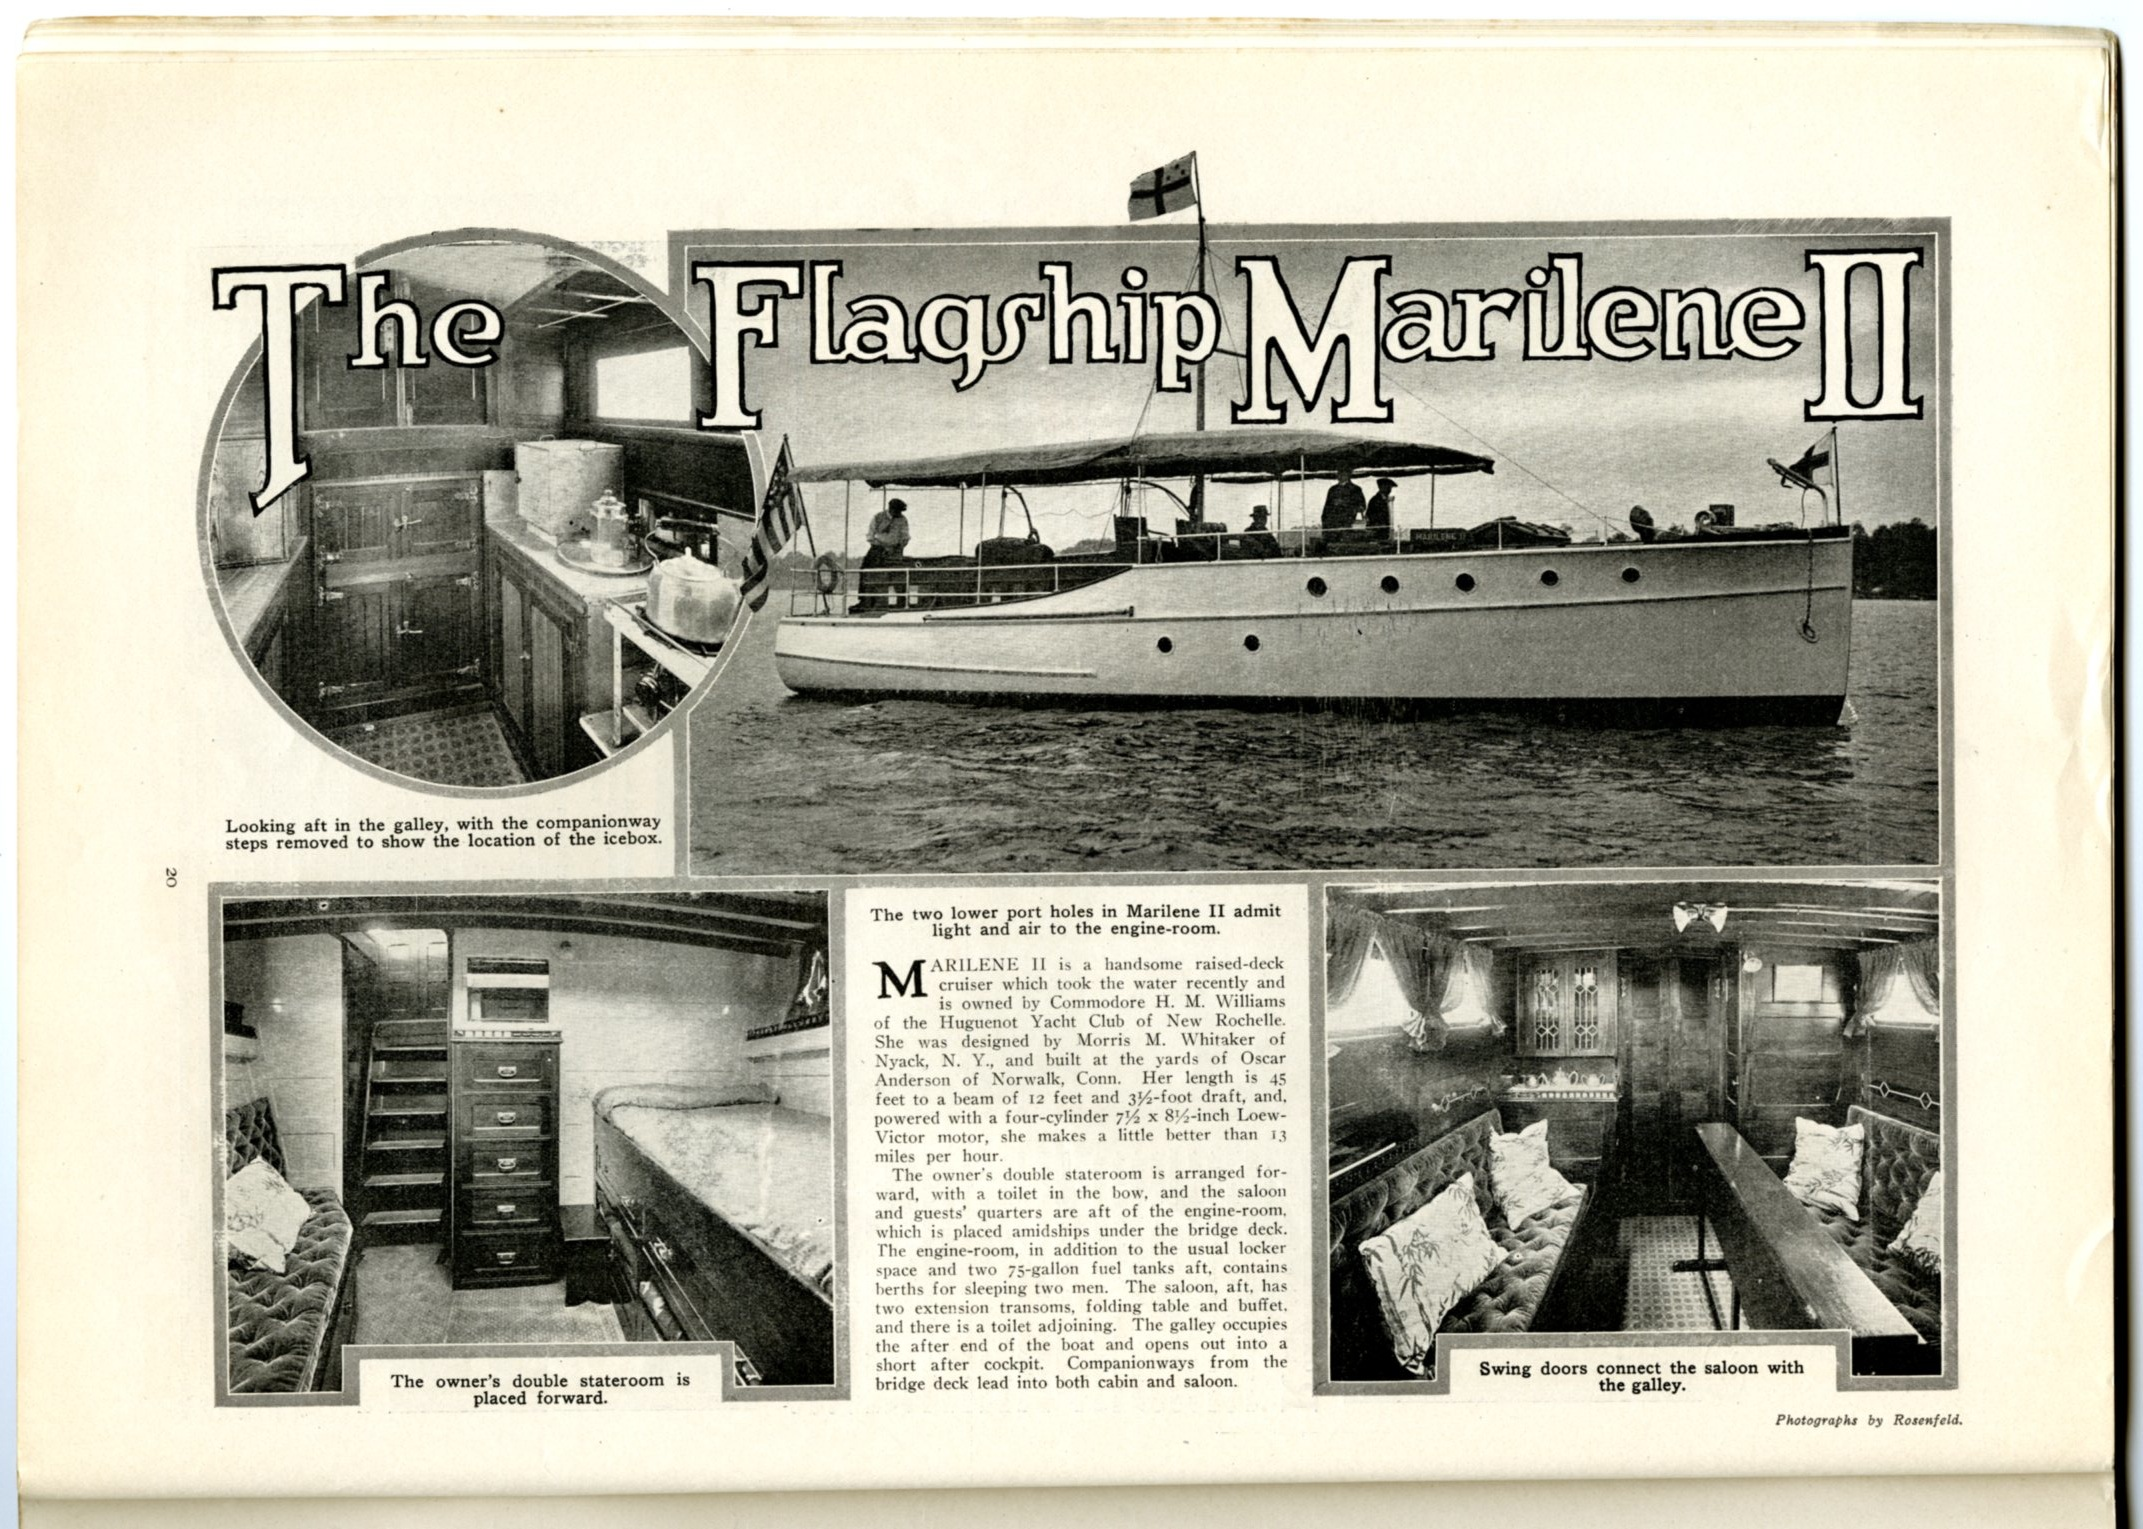 Another design by Morris Whitaker from the same year, pictured in Motor Boating magazine.